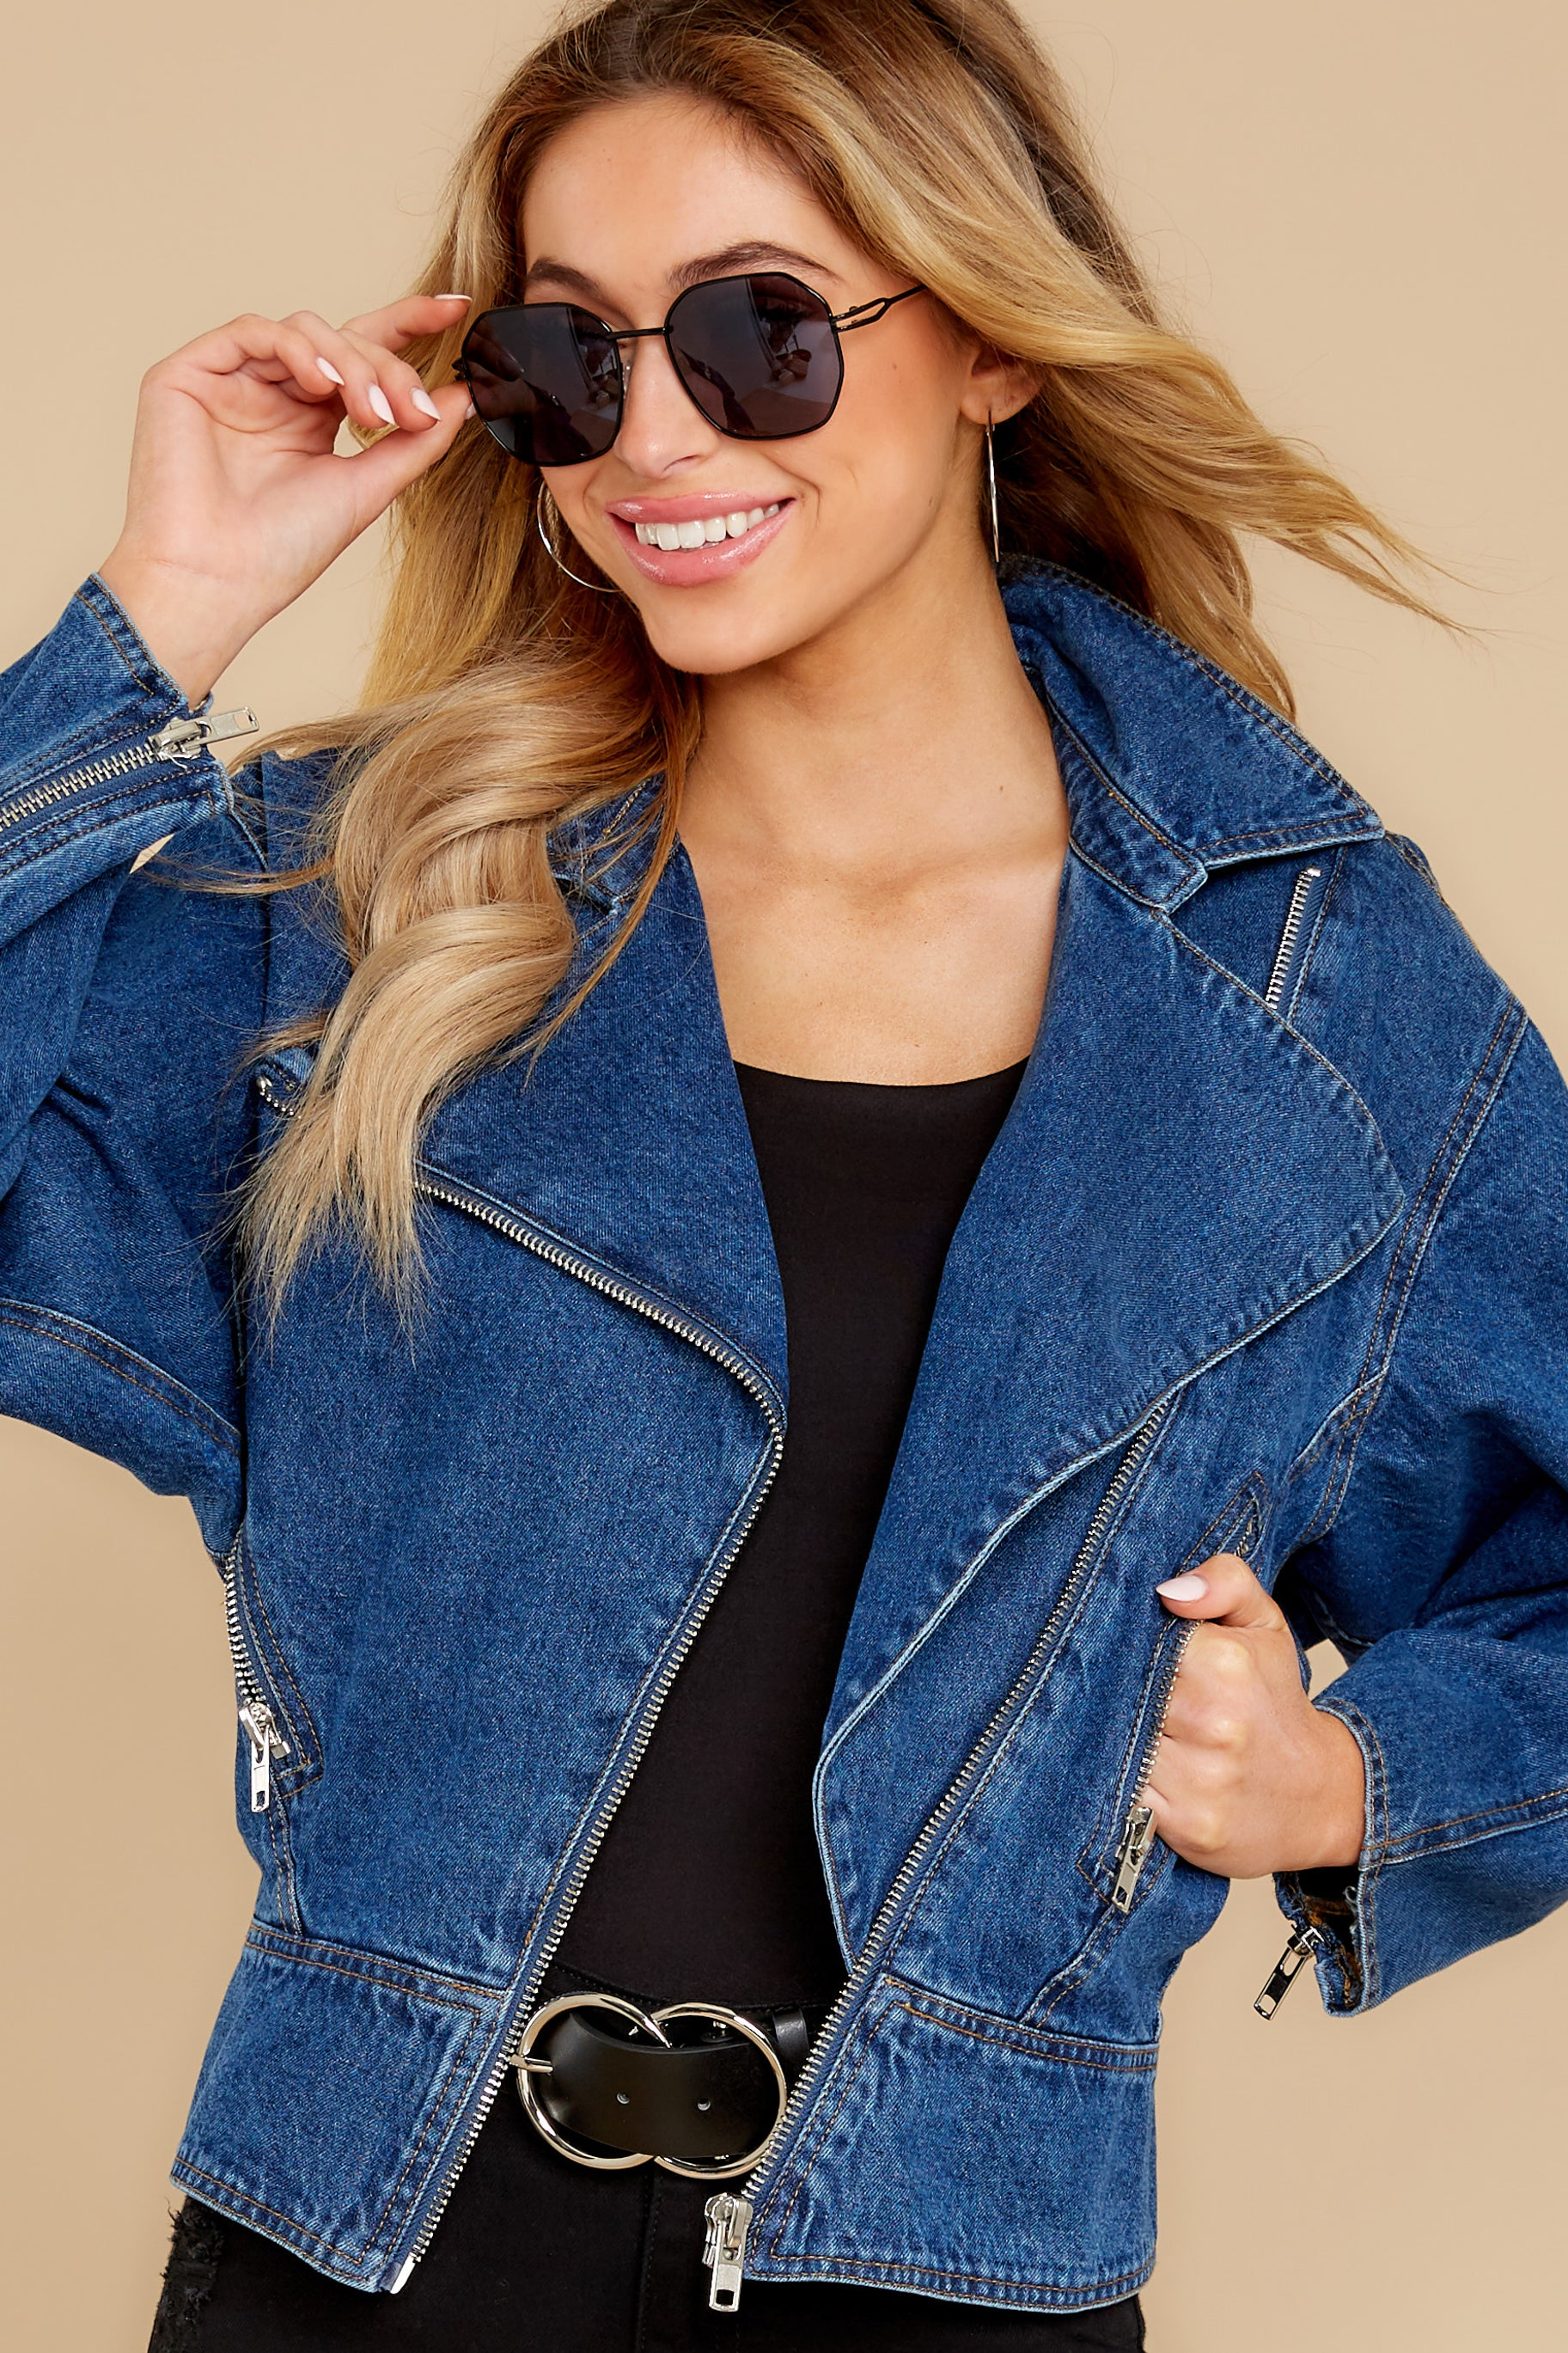 80s Windbreakers, Jackets, Coats Saturday Night Thrive Dark Wash Denim Jacket Blue $48.00 AT vintagedancer.com